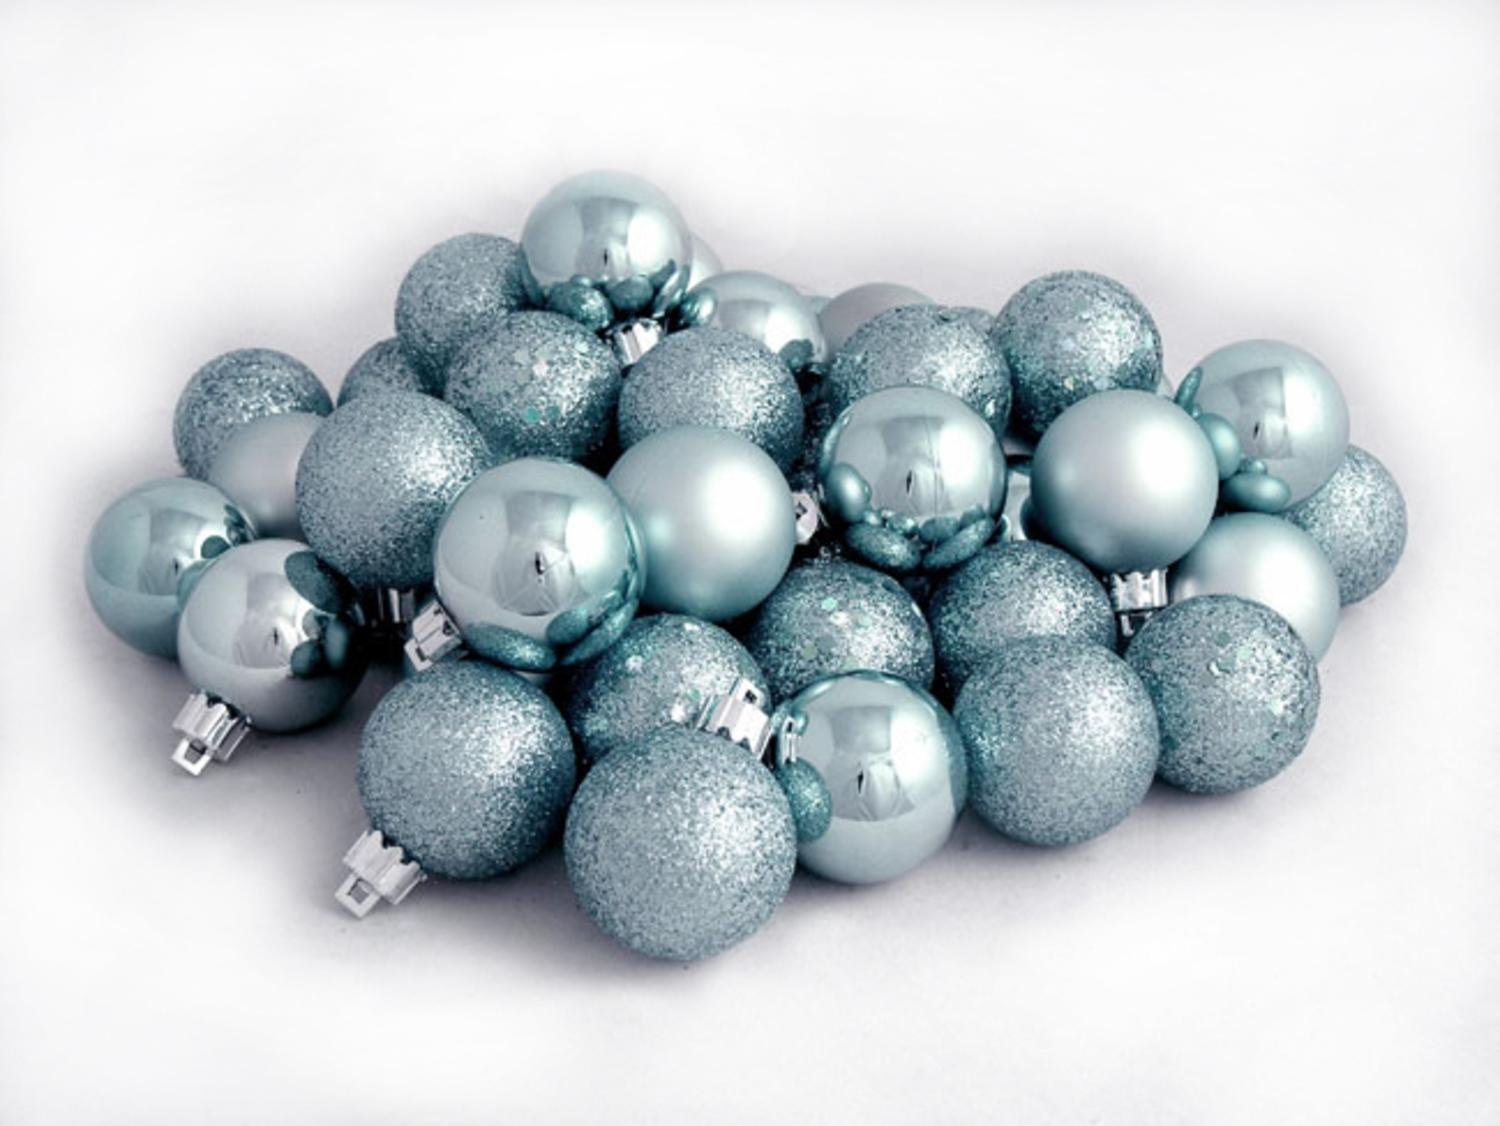 amazoncom northlight 60 count baby blue shatterproof 4 finish christmas ball ornaments 25 home kitchen - Light Blue Christmas Ornaments